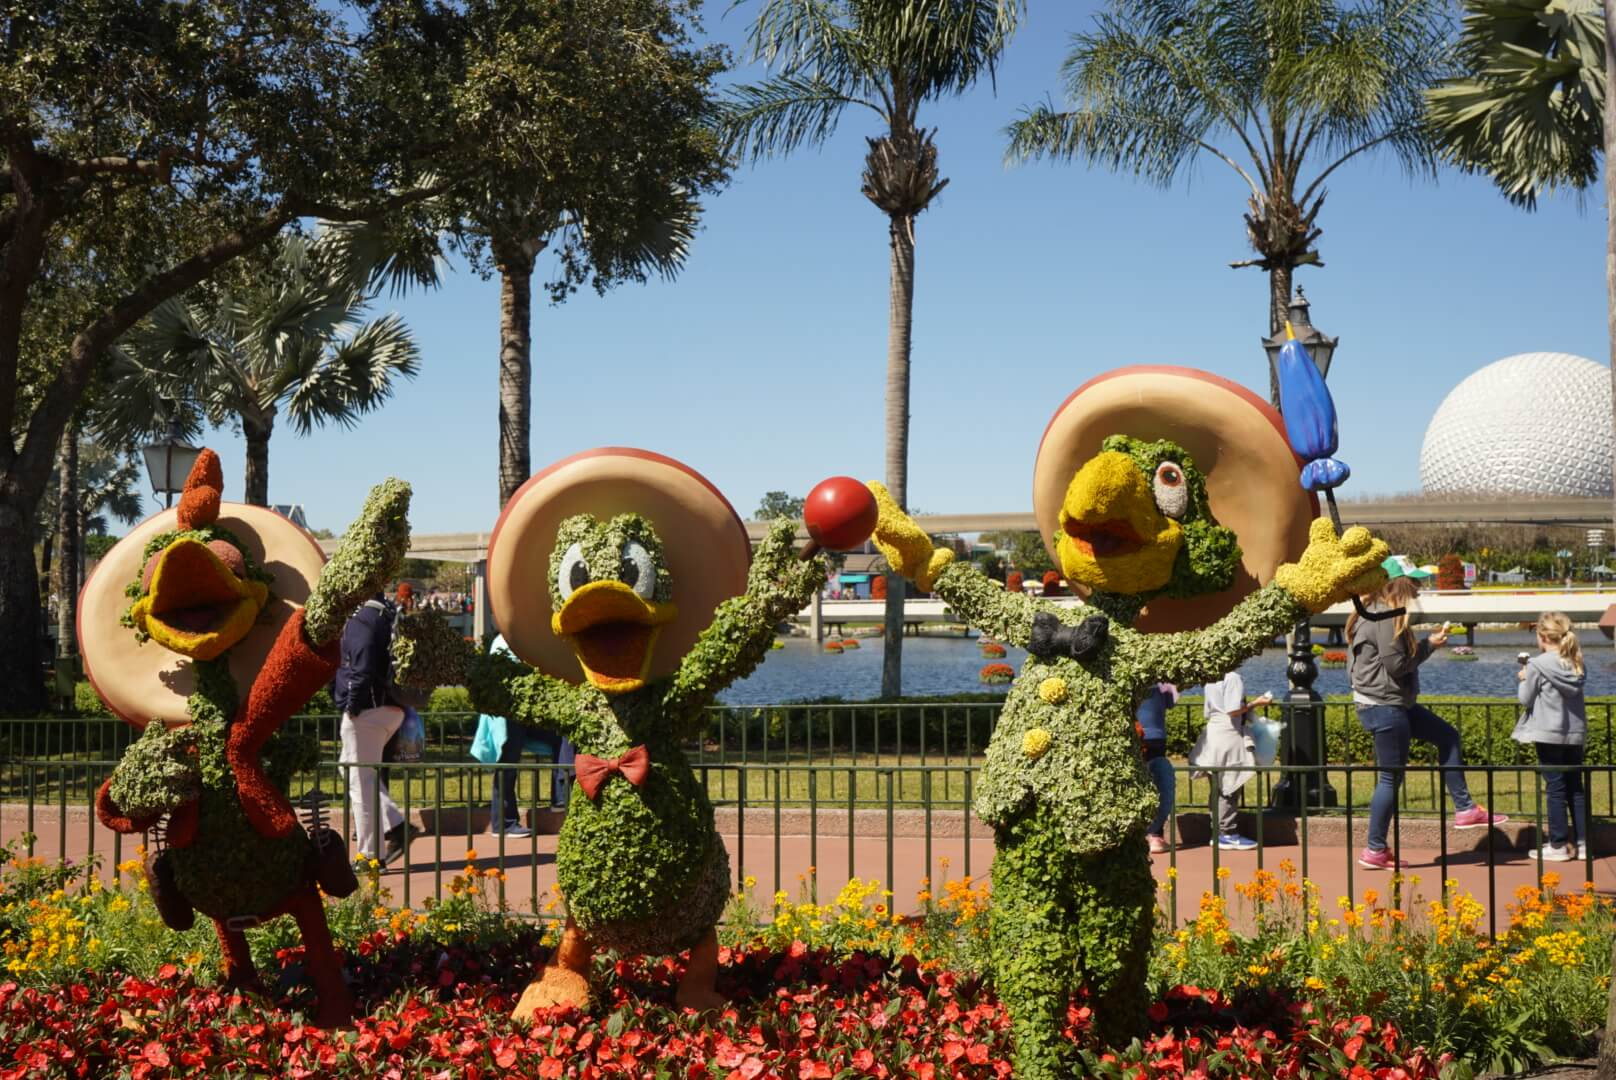 The Three Caballeros Topiaries at Epcot Flower and Garden Festival 2019